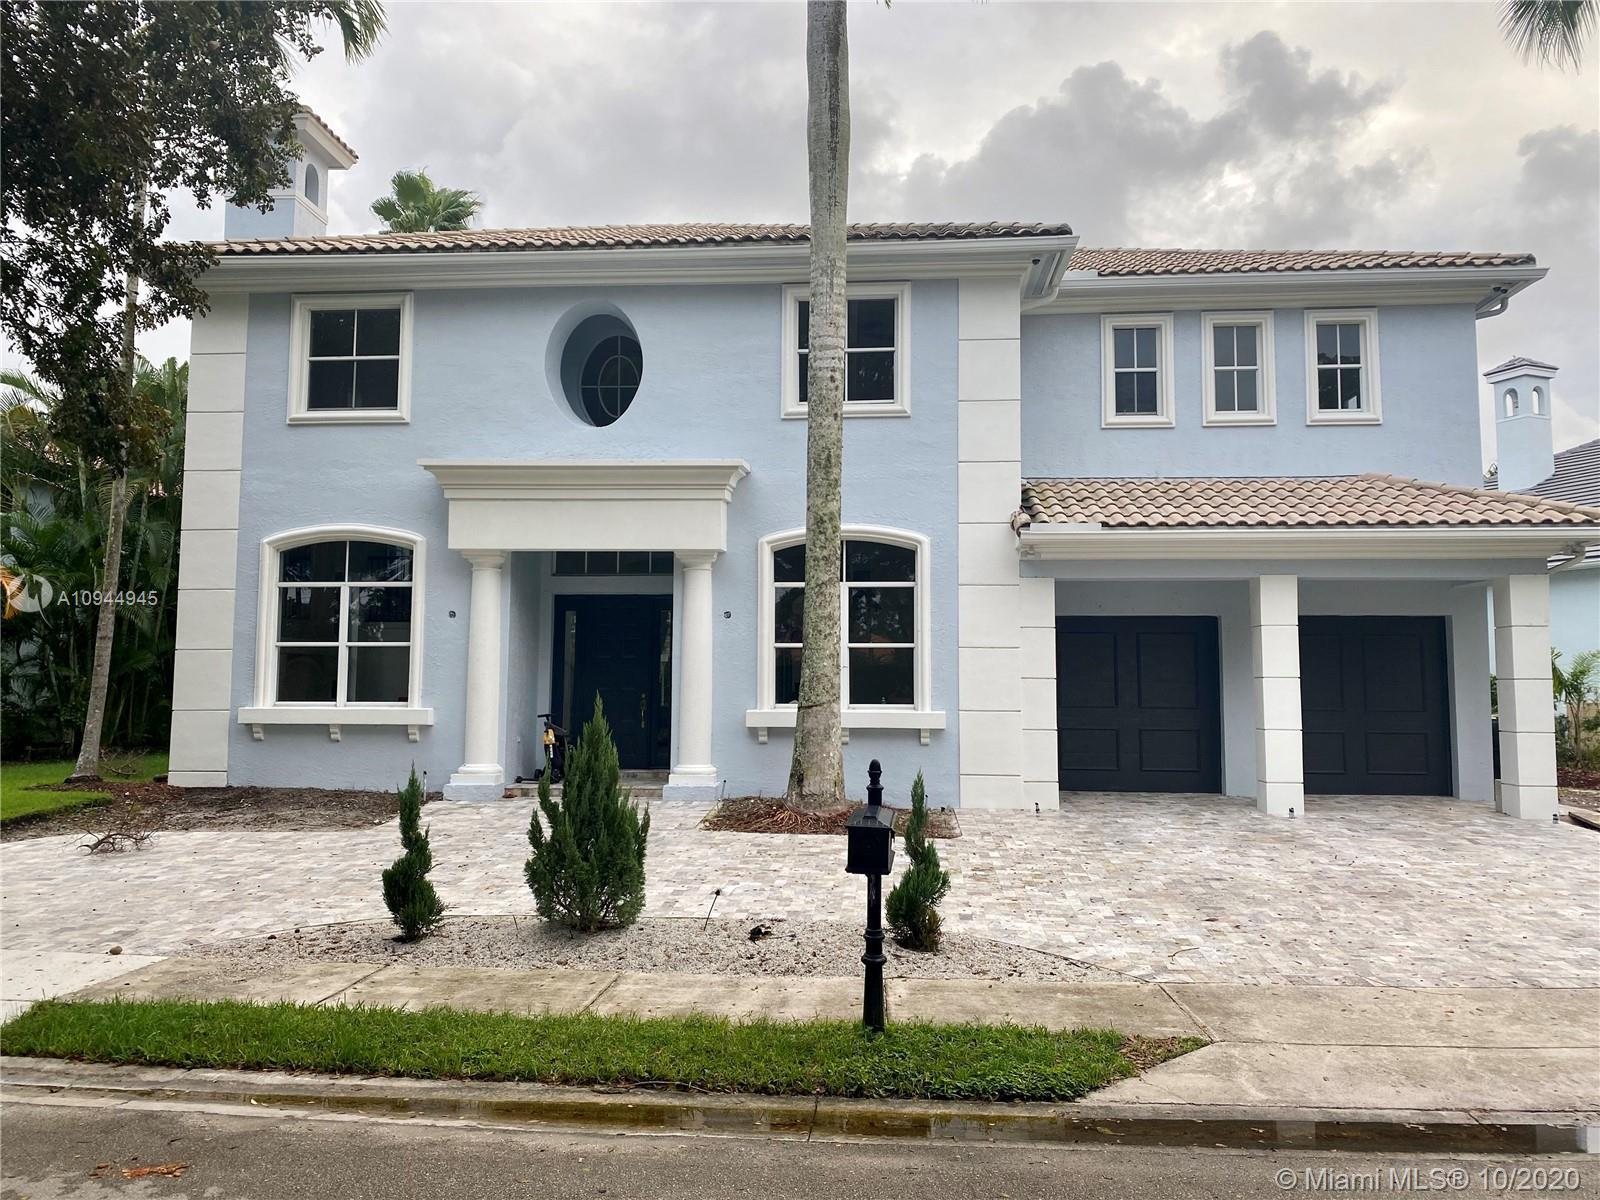 Completely renovated 2 STORY SINGLE FAMILY HOME in East Boca Raton in a Gated Community with full ti